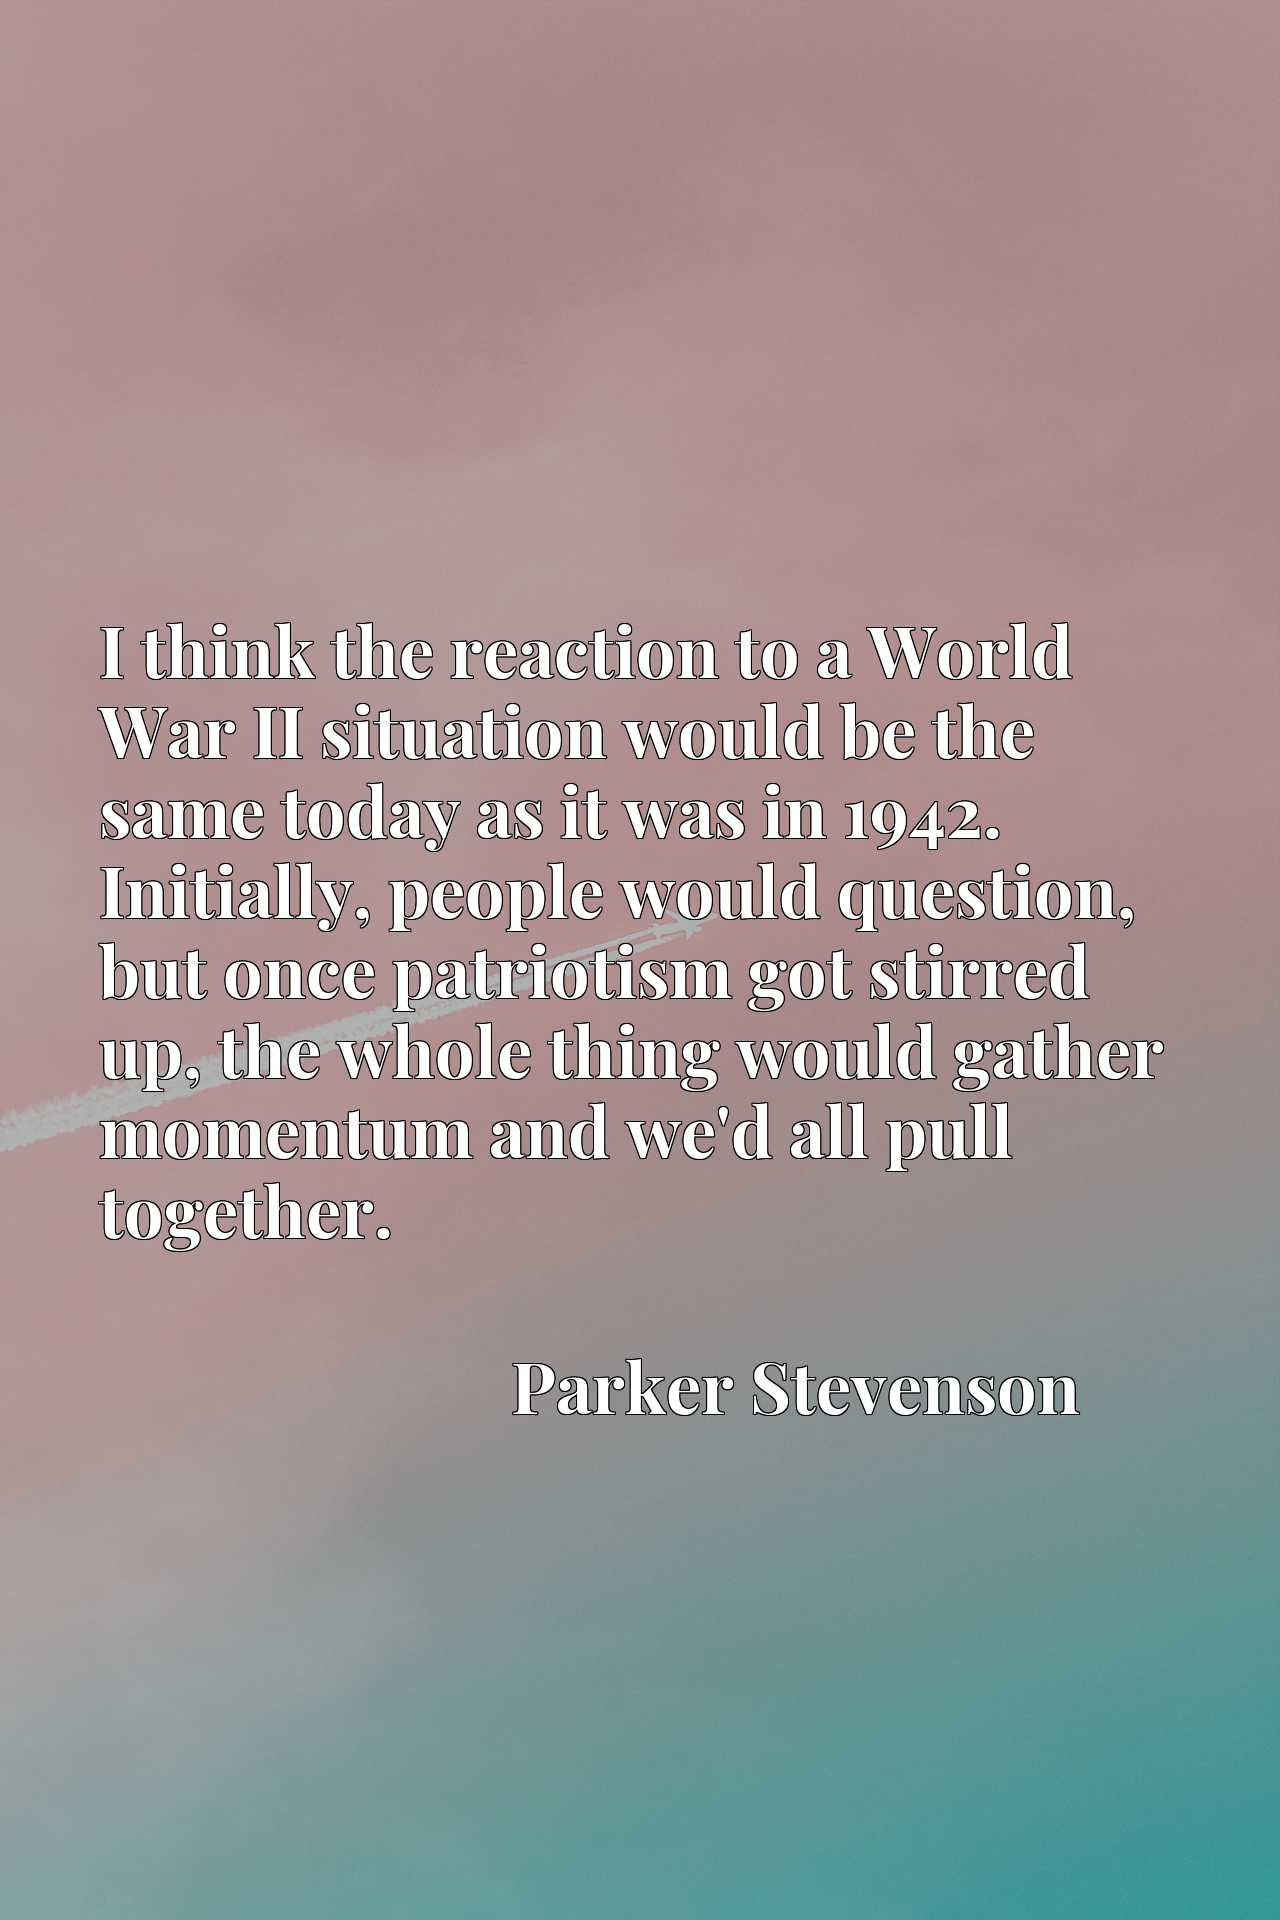 I think the reaction to a World War II situation would be the same today as it was in 1942. Initially, people would question, but once patriotism got stirred up, the whole thing would gather momentum and we'd all pull together.